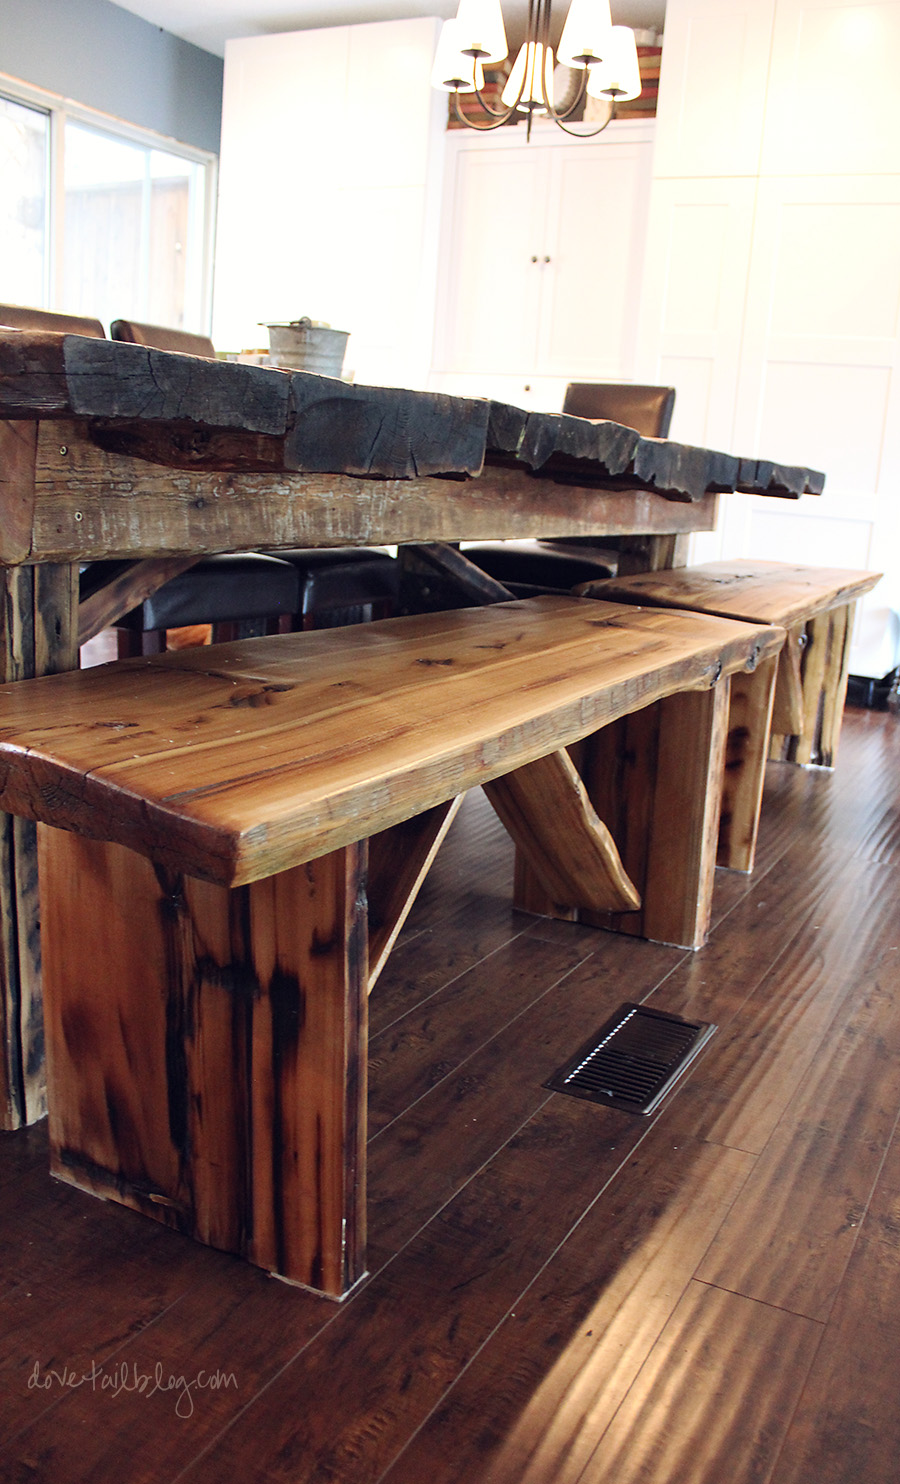 Home Made Kitchen Table Homemade Reclaimed Wood Dining Table Benches Simple On Purpose